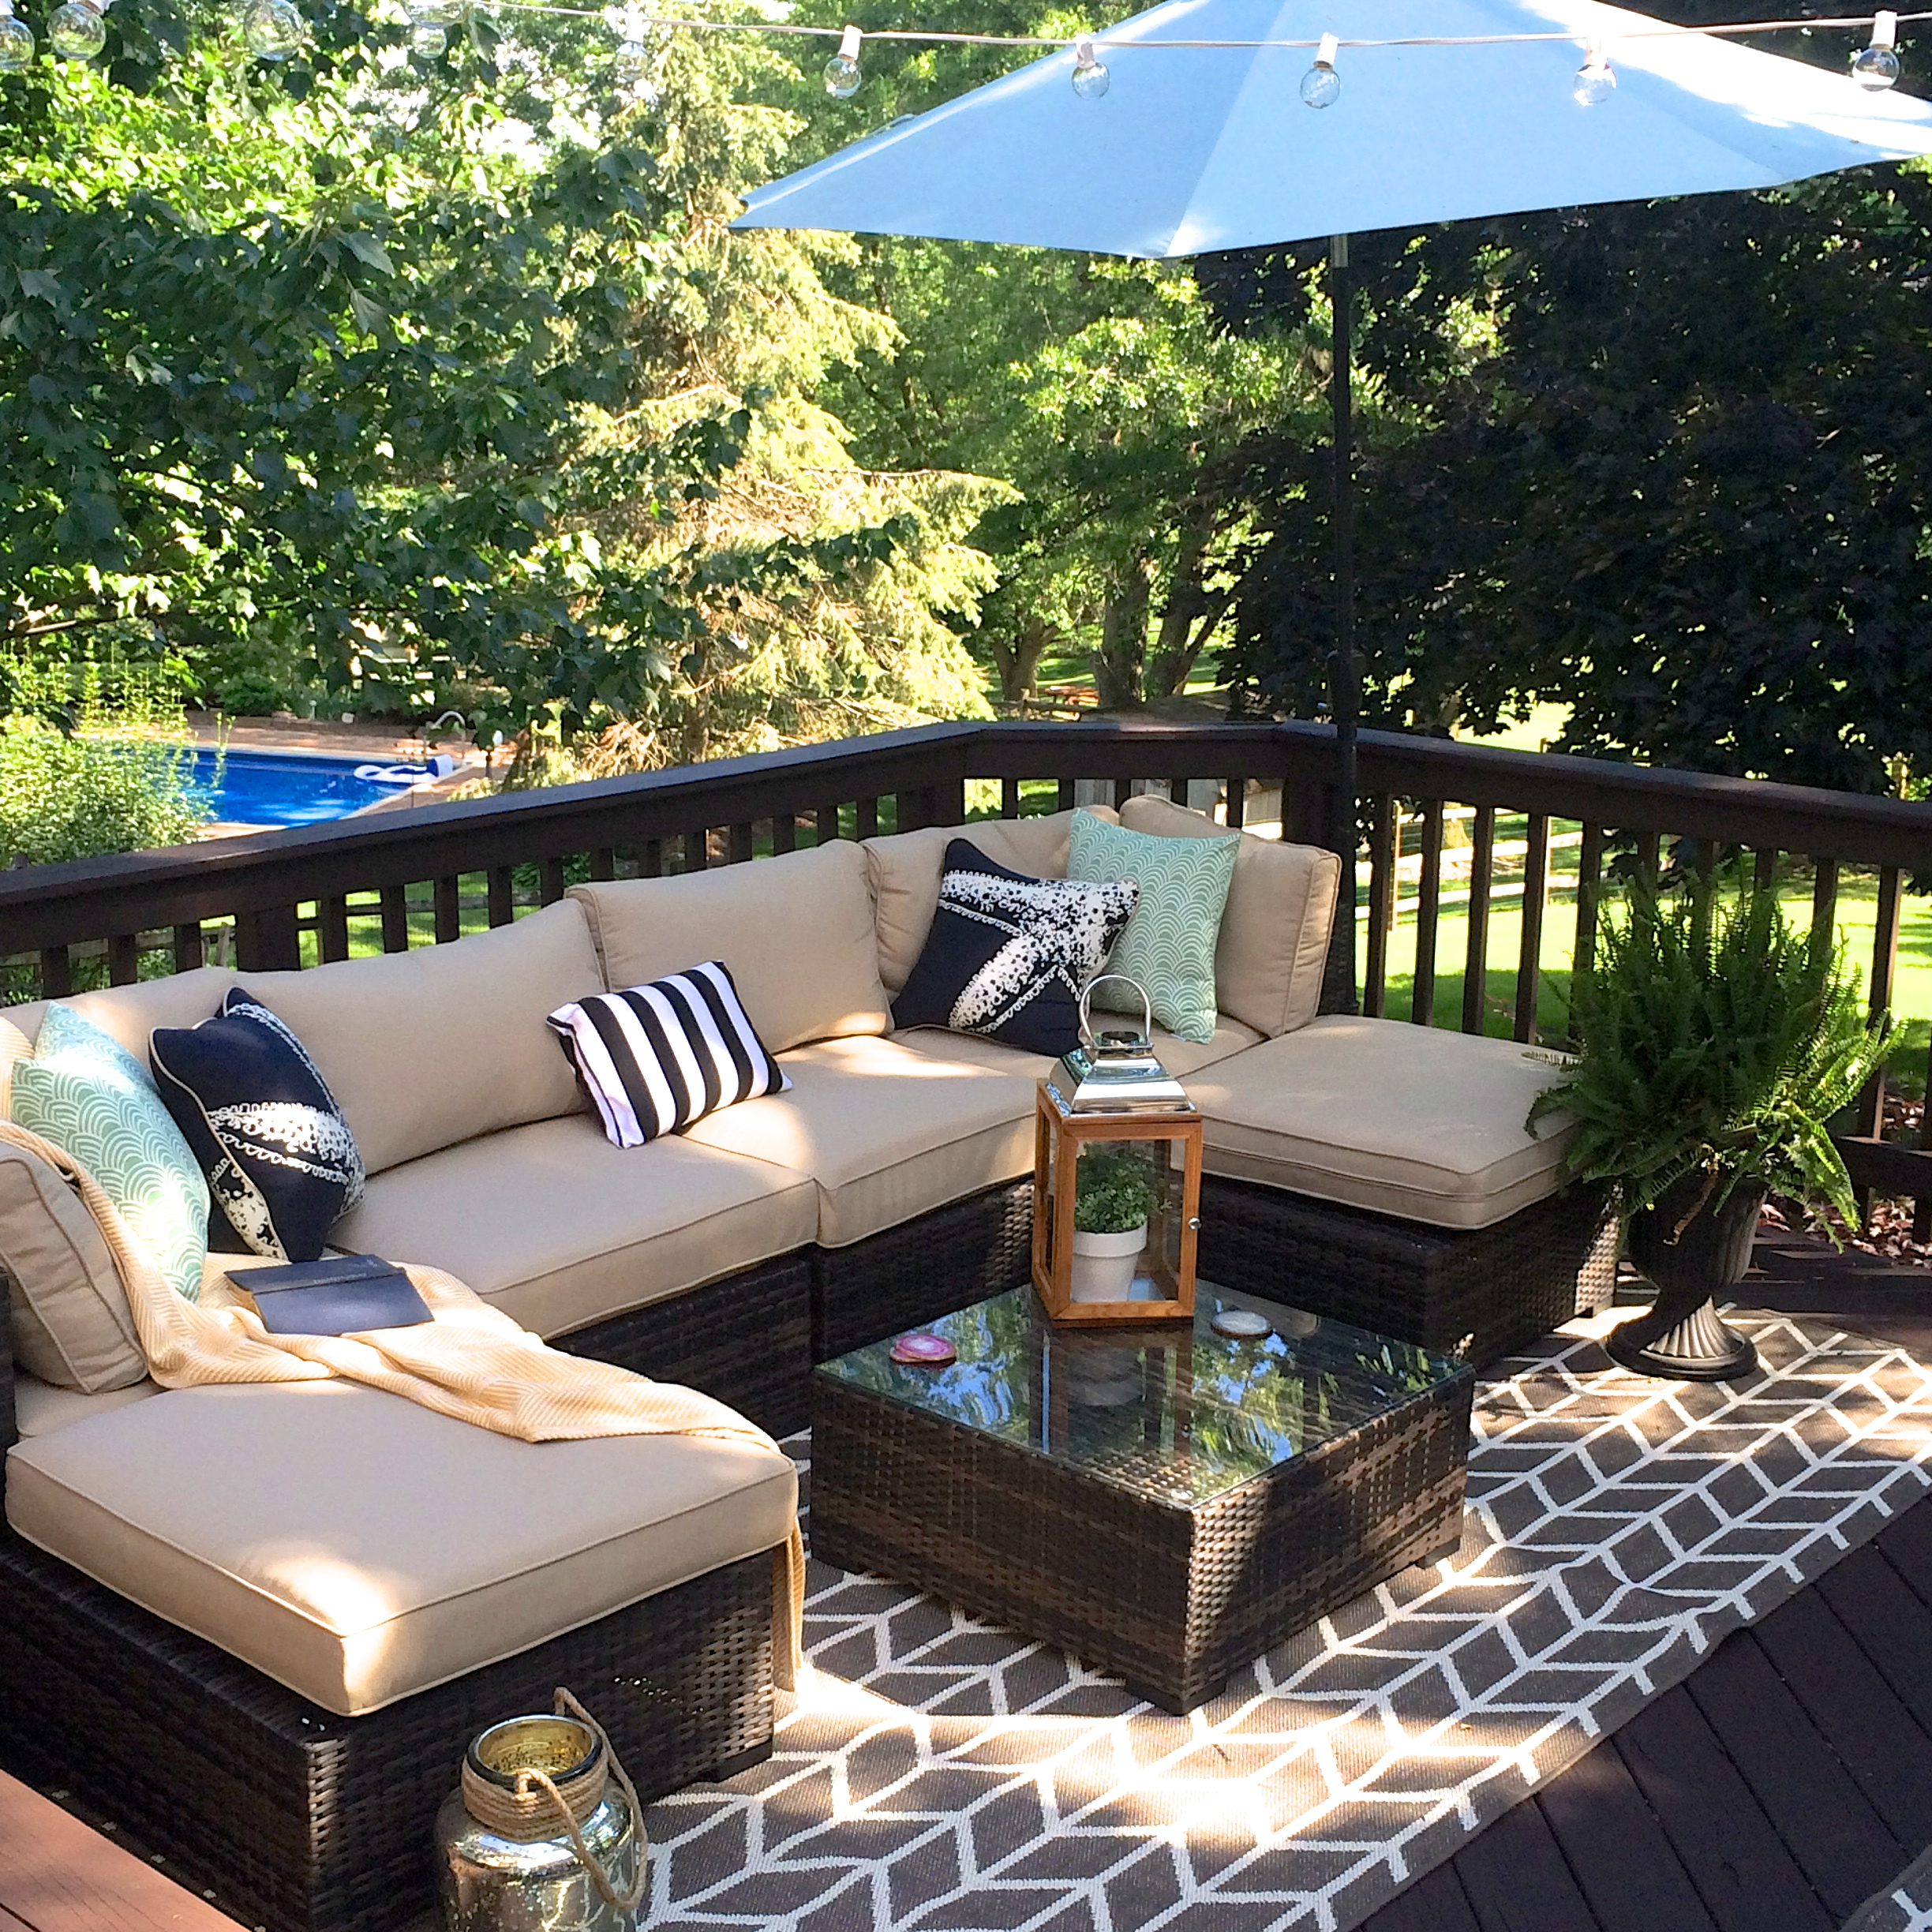 Our outdoor living room diy deck makeover reveal for Outdoor deck furniture ideas